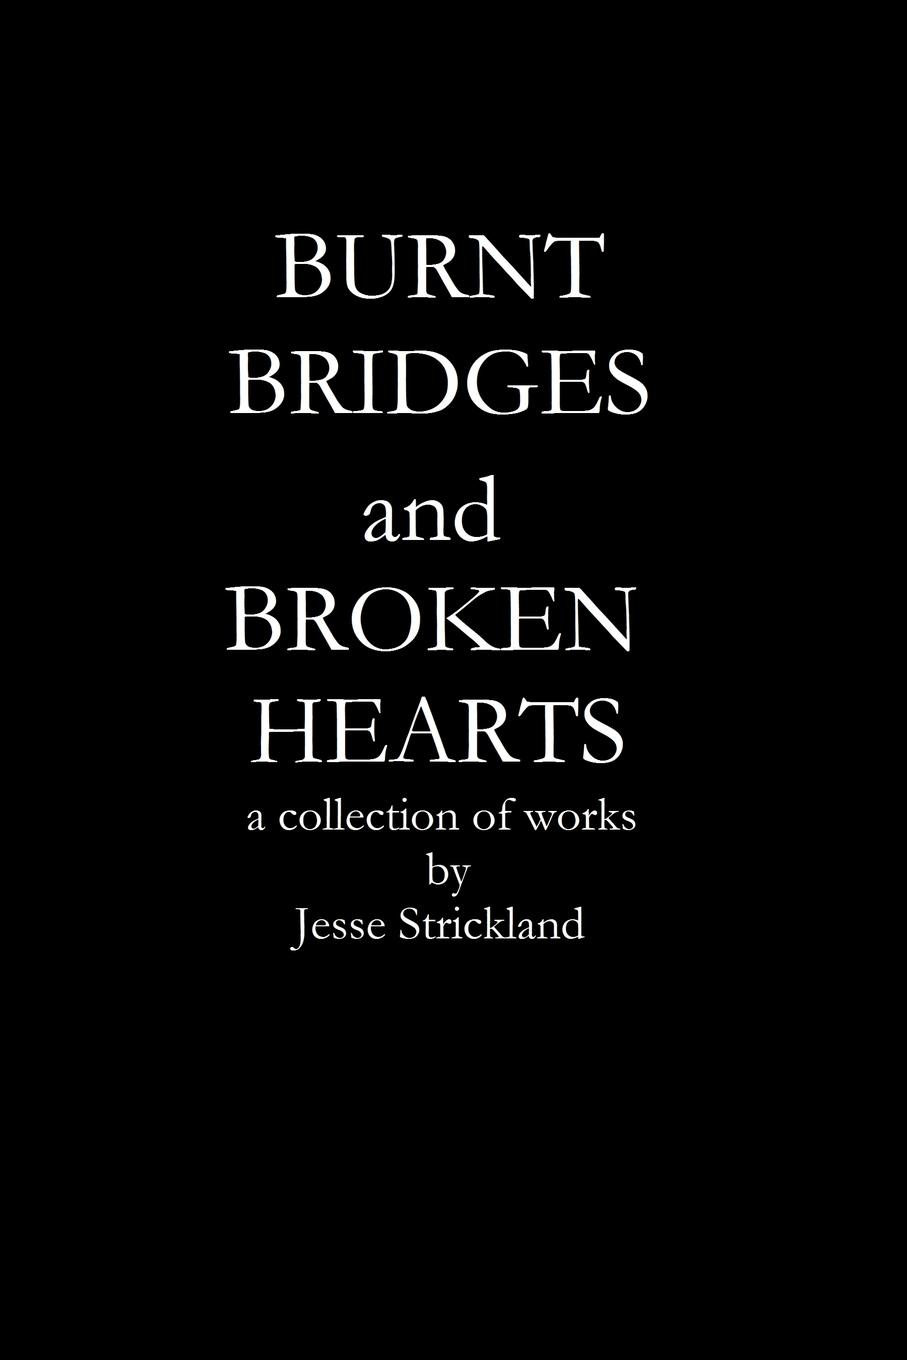 Jesse Strickland Burnt bridges and broken hearts jennifer joyce the little teashop of broken hearts